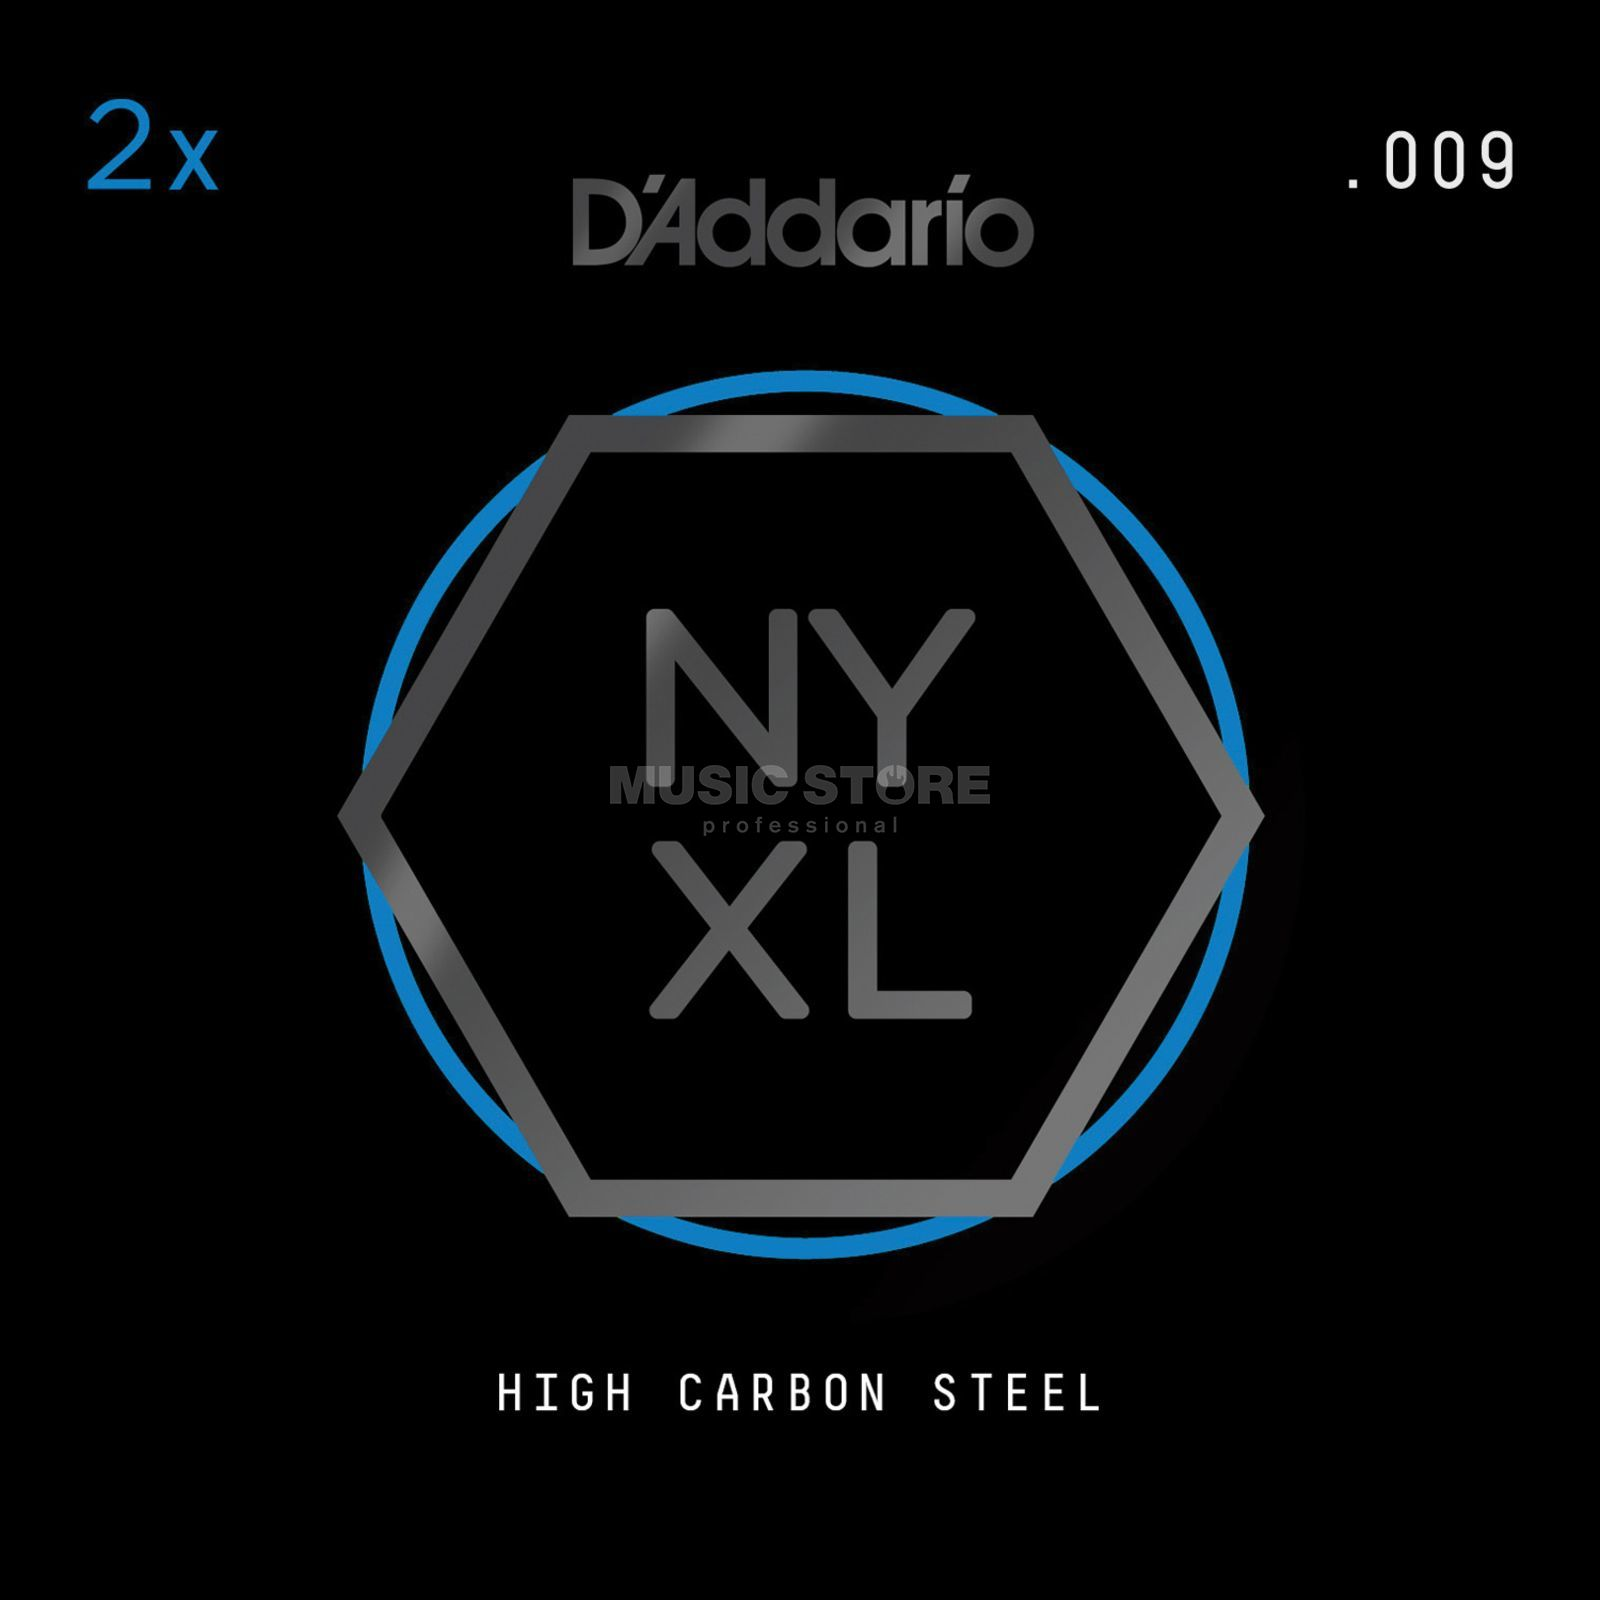 D'Addario NYPL009 Plain Single String 2-Pack - High Carbon Steel Zdjęcie produktu